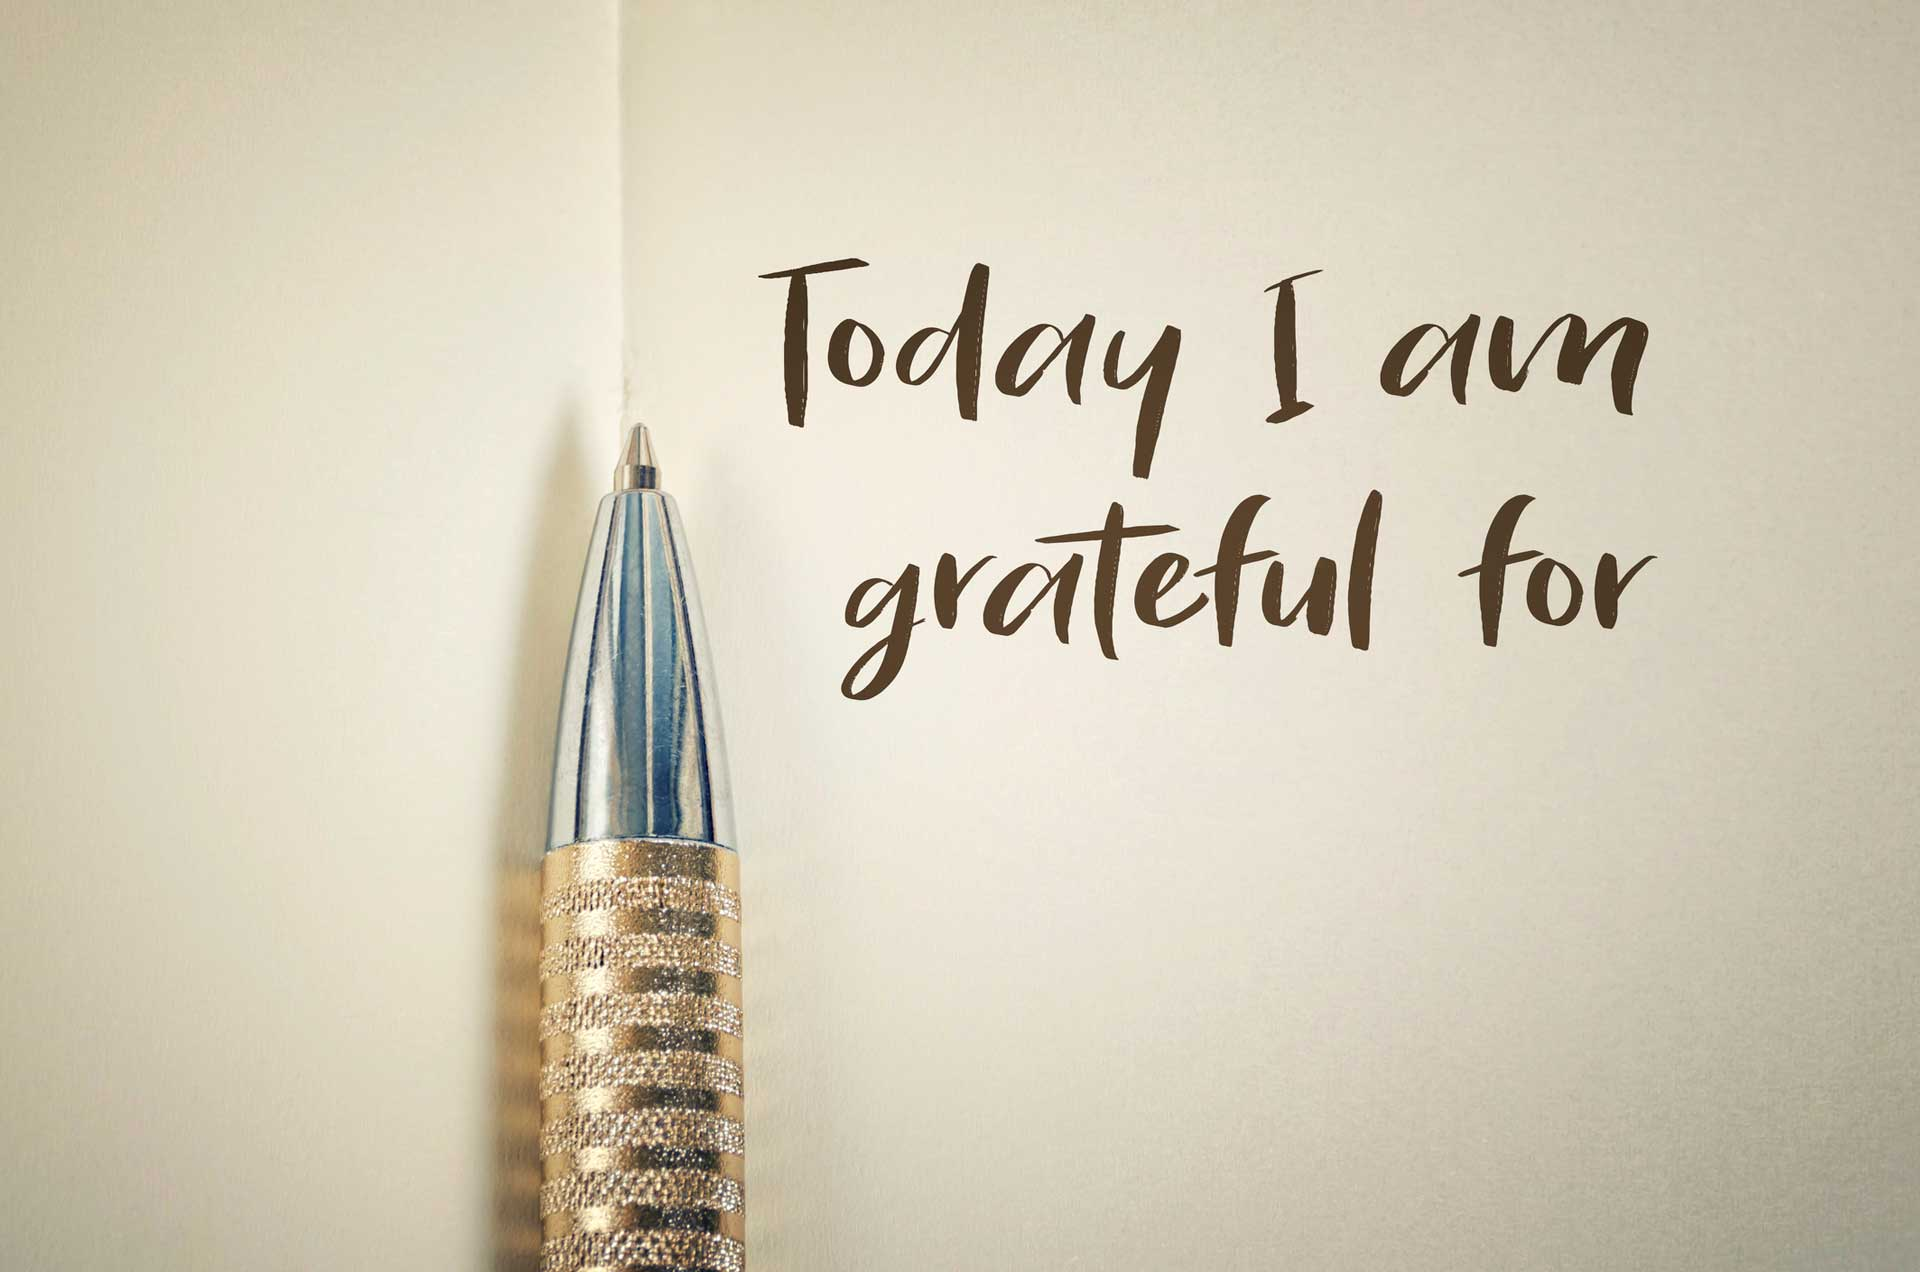 The Positive Effects of Gratitude